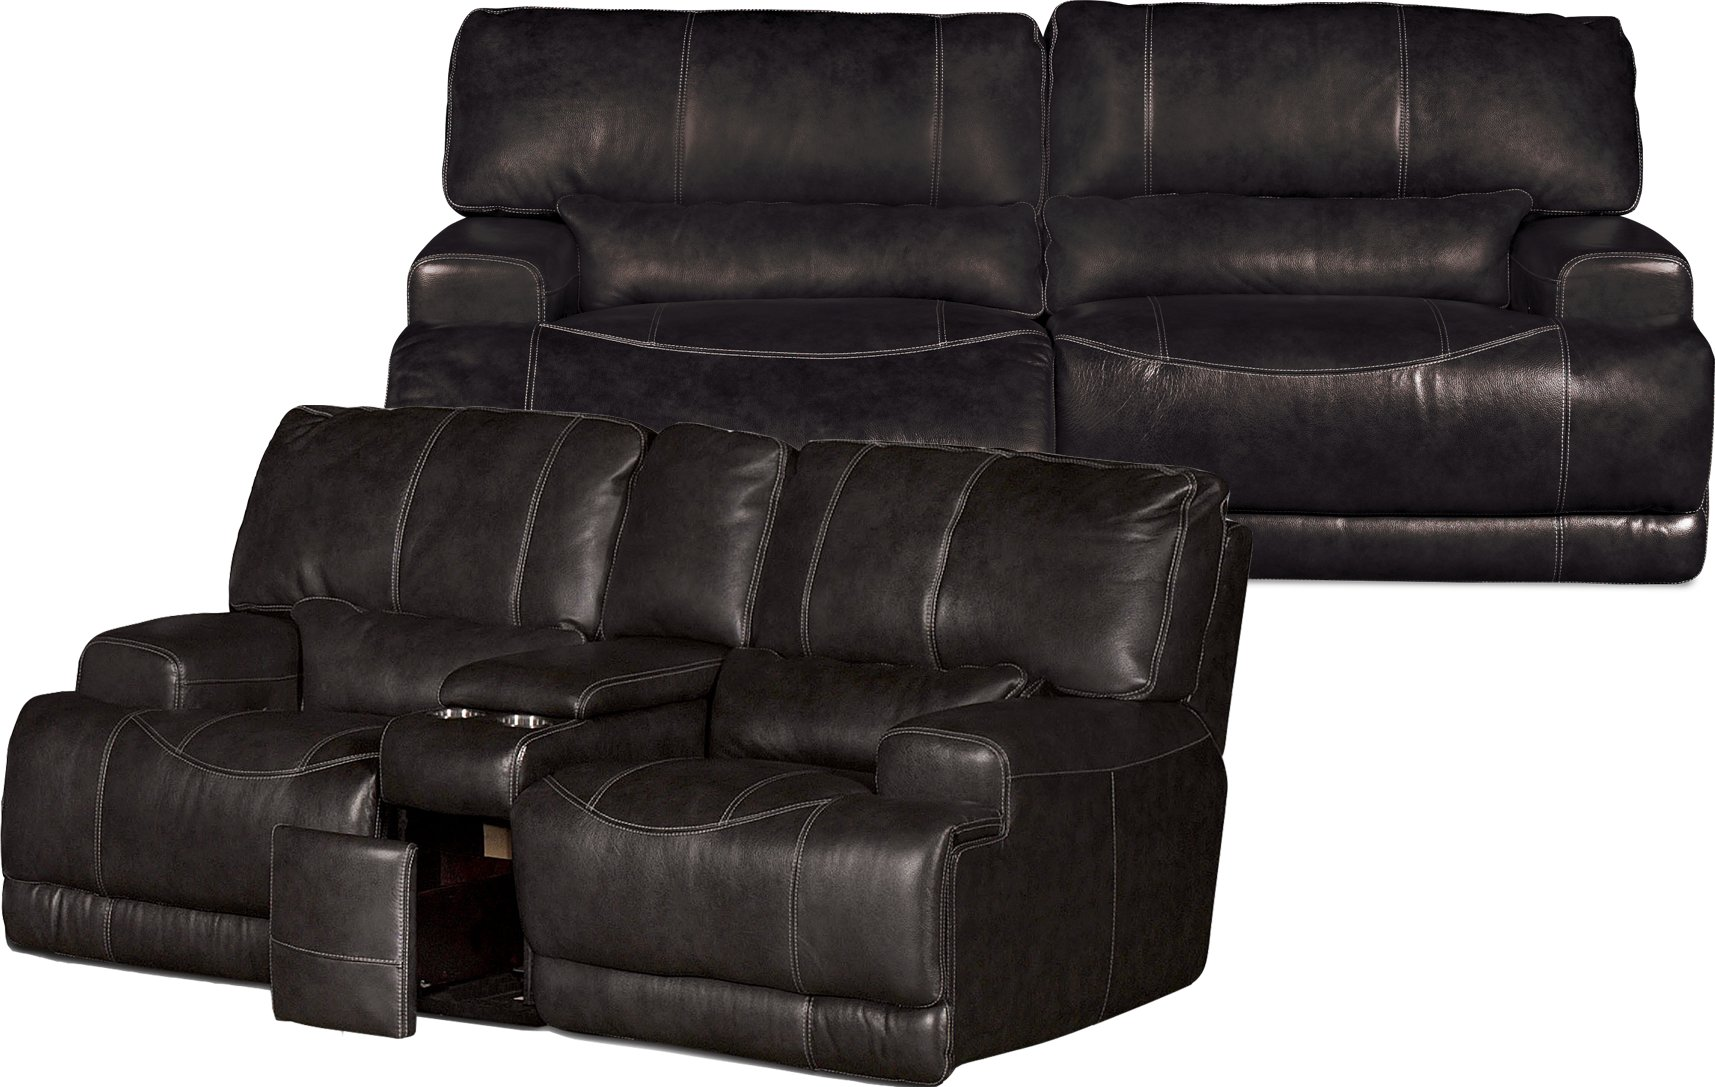 Charcoal Leather Match 3 Piece Power Reclining Sectional Stampede Rc Willey Furniture Store